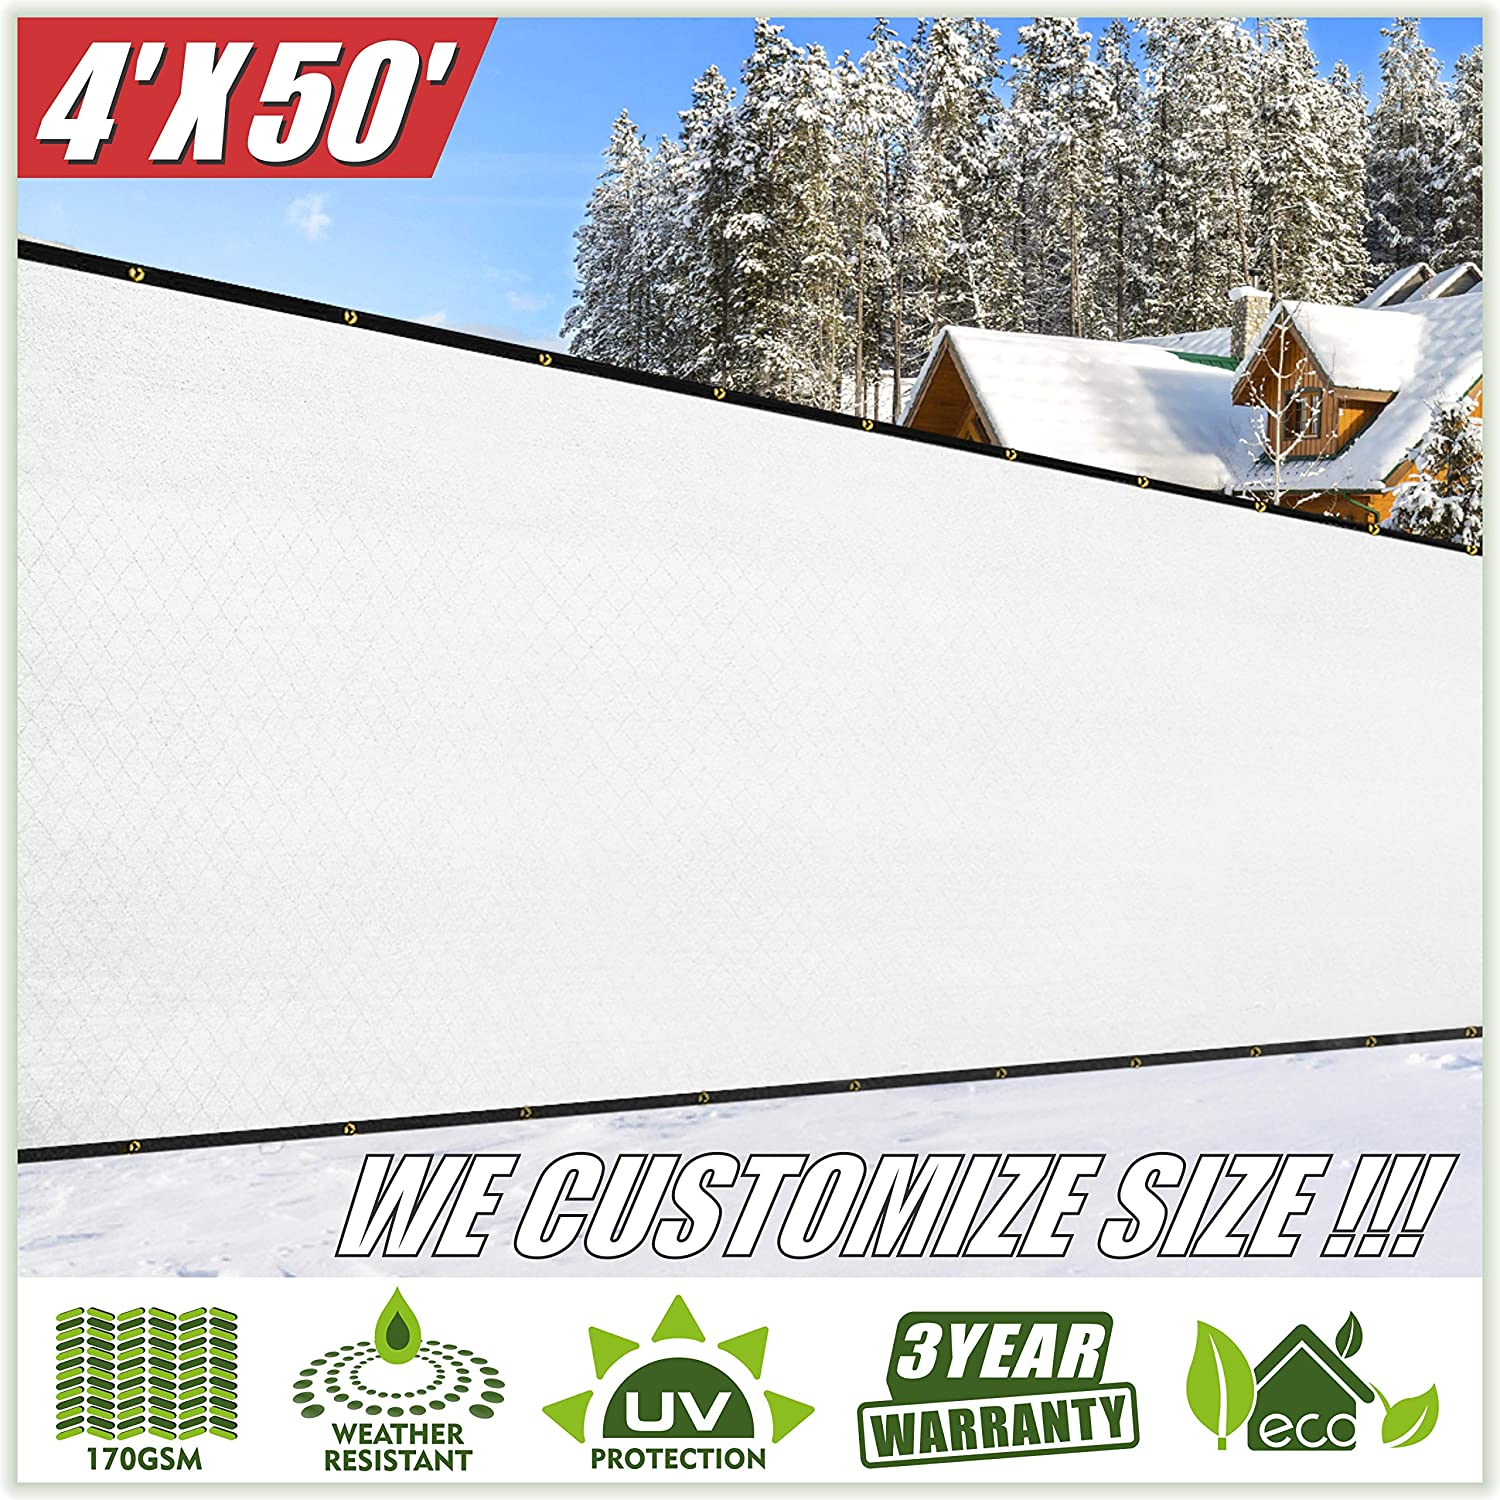 ColourTree 4' x 50' White Fence Privacy Screen Windscreen Cover Fabric Shade Tarp Netting Mesh Cloth - Commercial Grade 170 GSM - Heavy Duty - 3 Years Warranty - We Make Custom Size